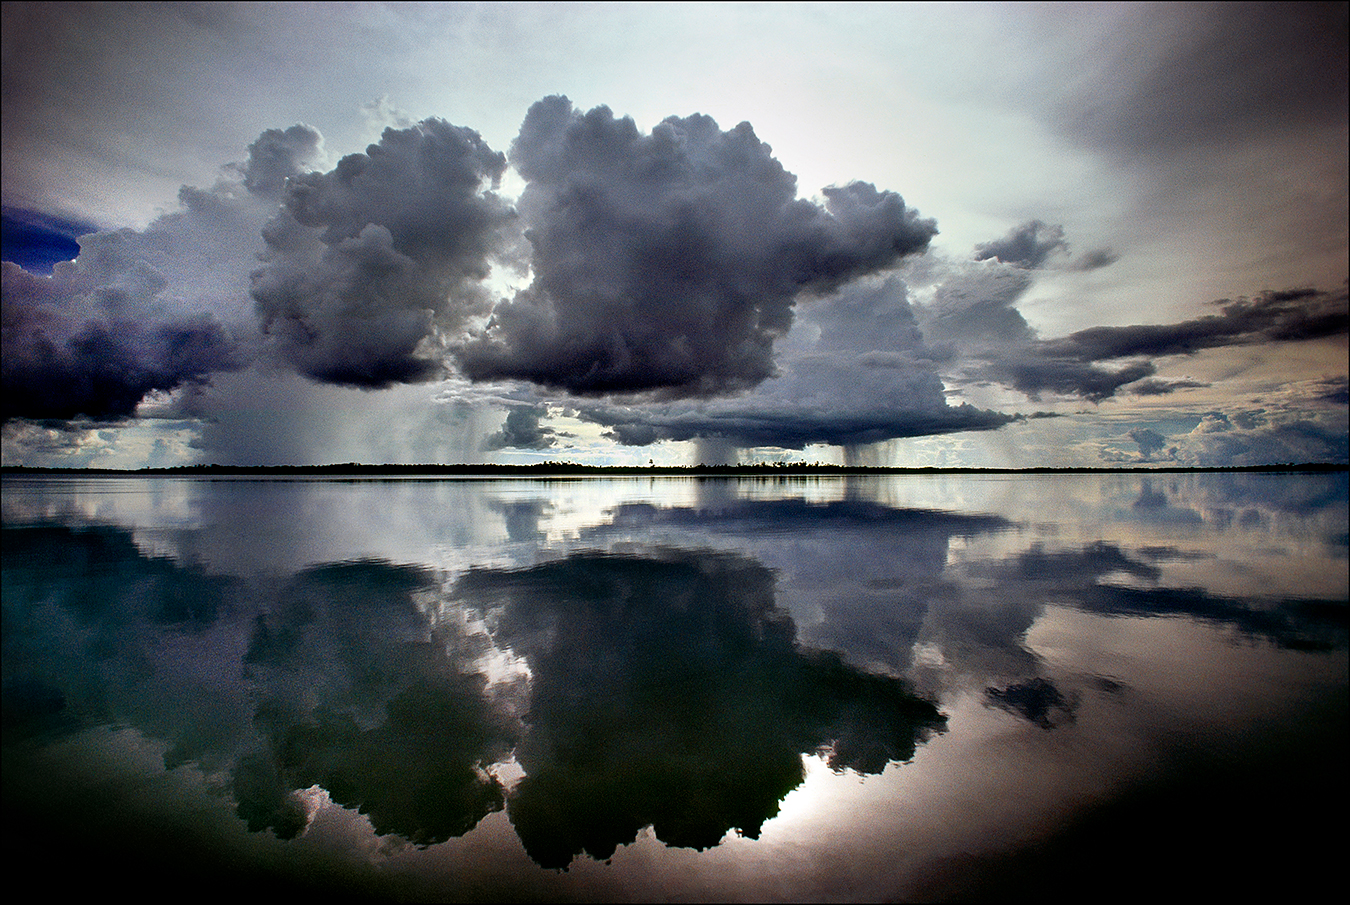 "Menacing cumulus clouds are mirrored in the placid waters of Lake Murray, the largest lake in Papua New Guinea, covering an area of some seven hundred square miles. About five thousand indigenous communities inhabit this lake region. In 1923, The New York Times reported on an Australian expedition that used amphibious airplanes to chart Lake Murray and the explorers' close encounters with indigenous people called, at the time, ""head-hunters."" 